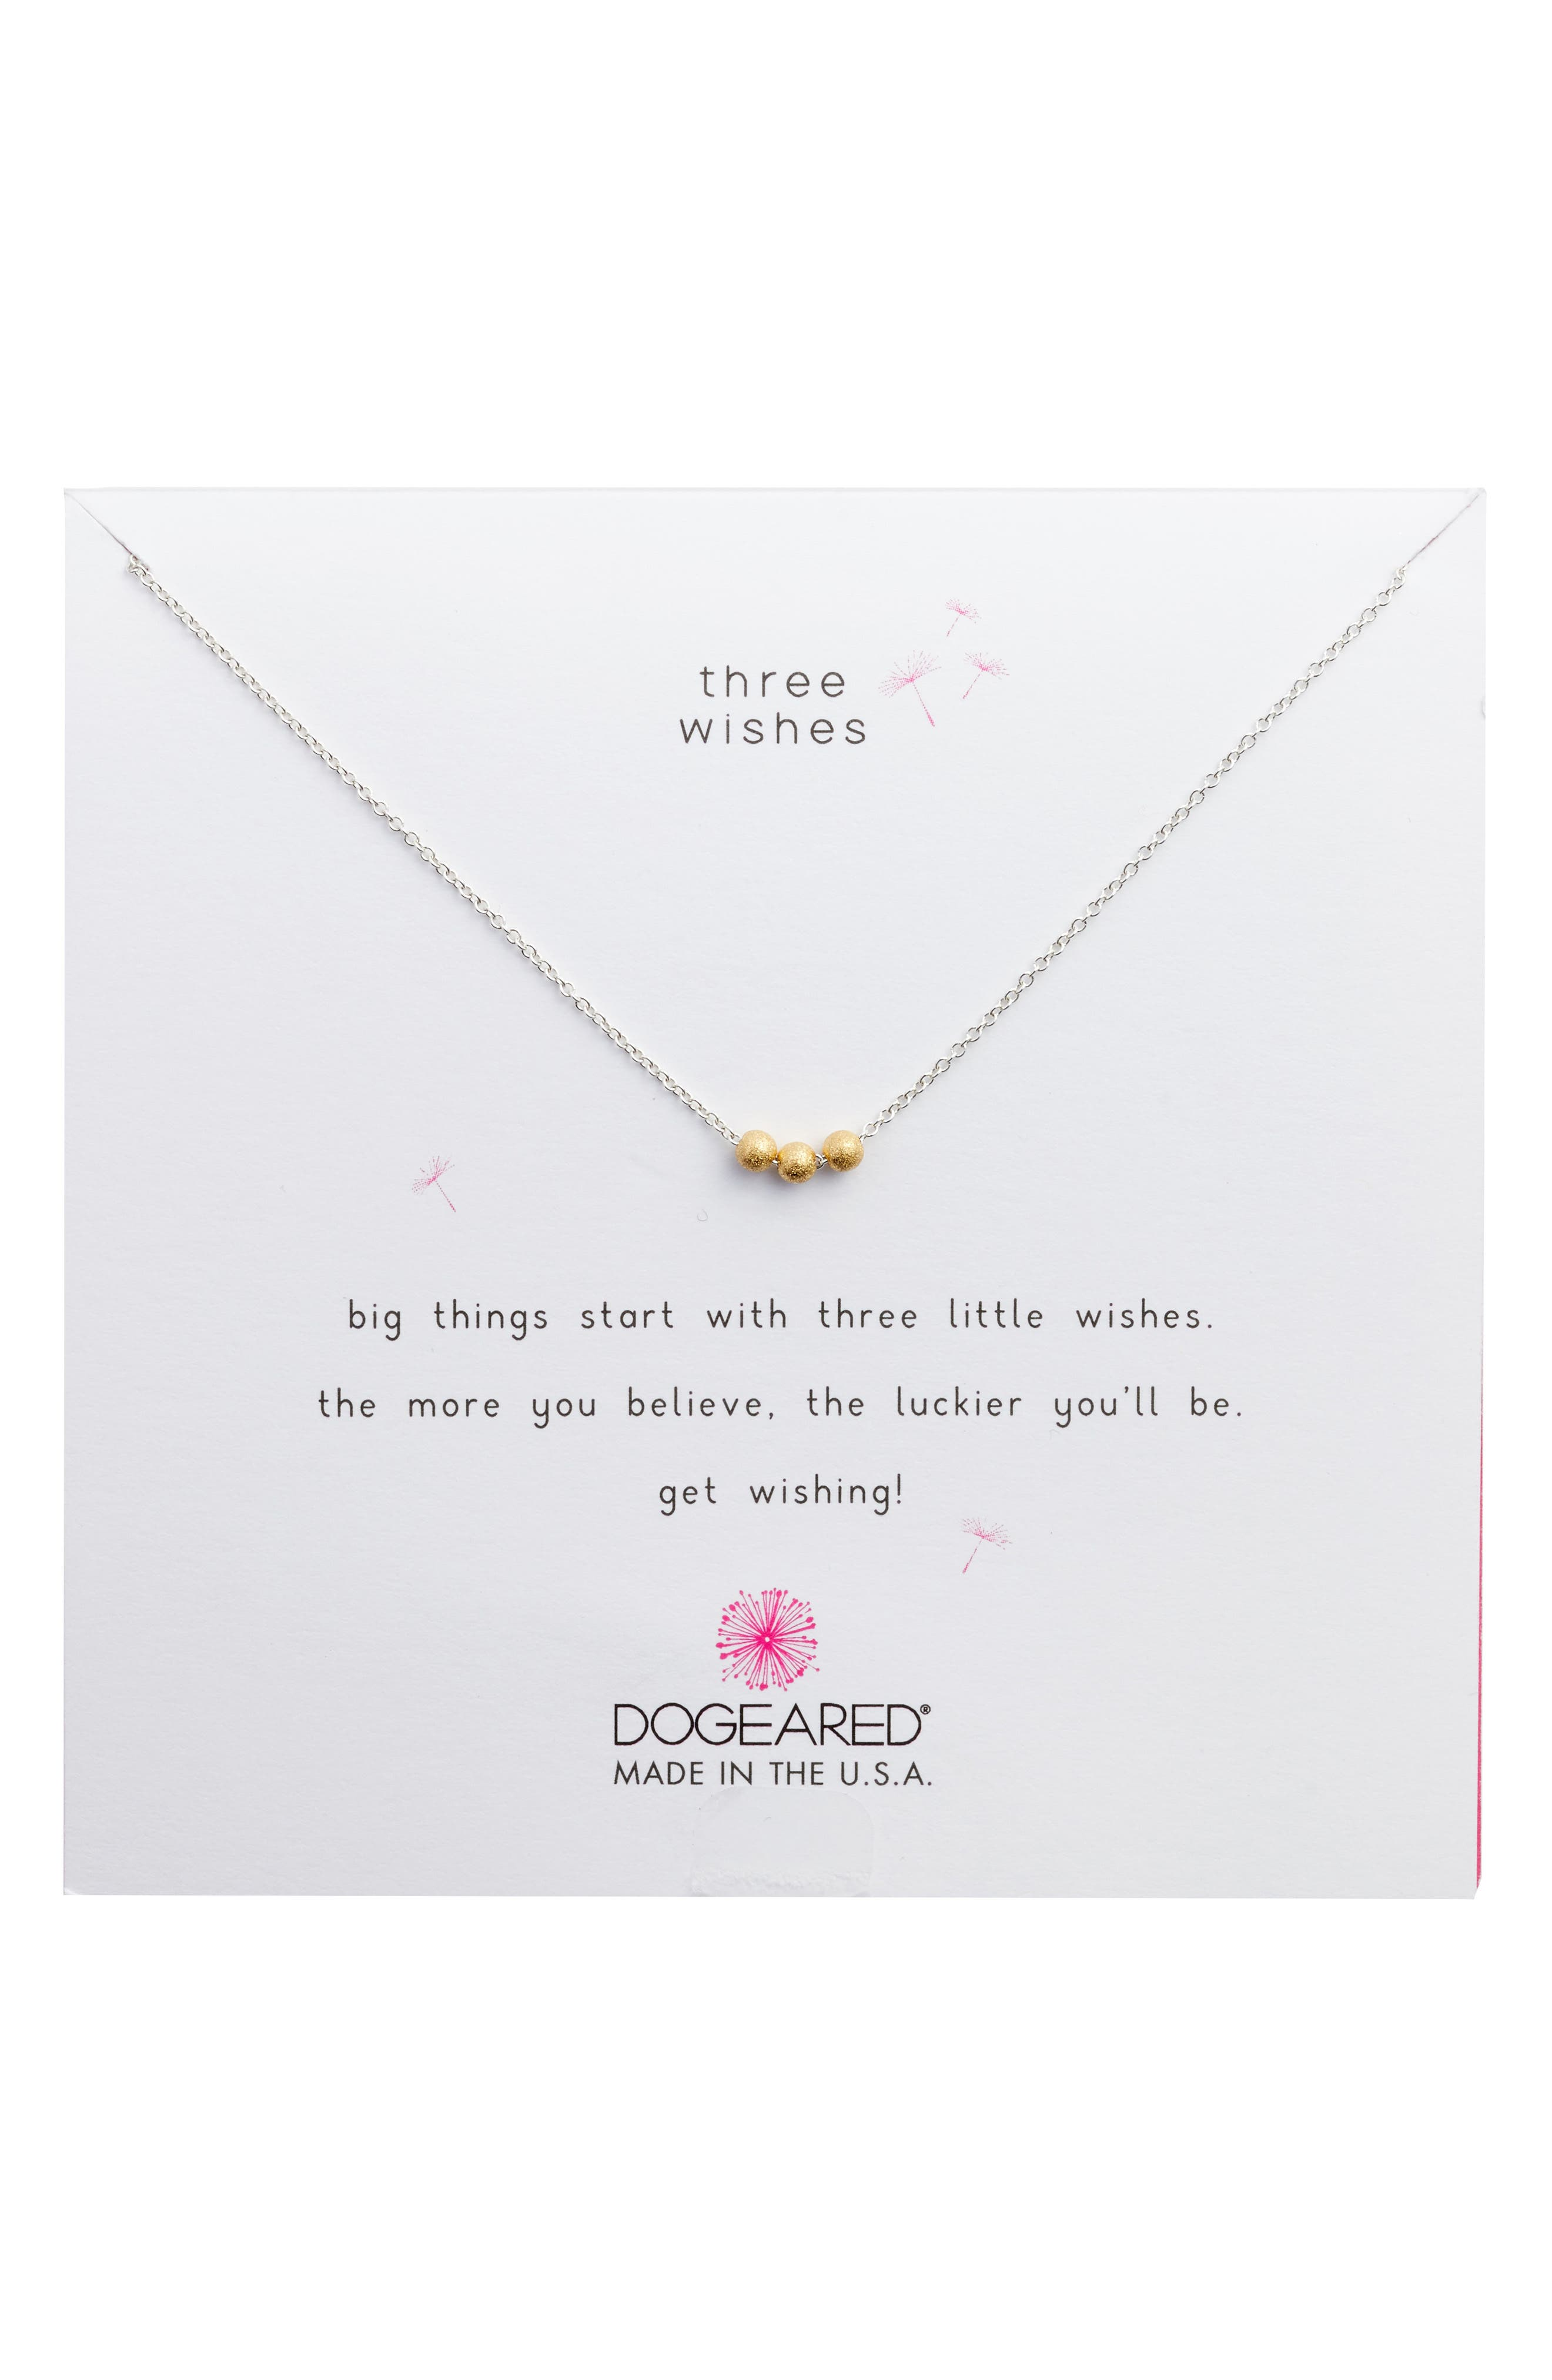 Dogeared 3 Wishes Charm Necklace